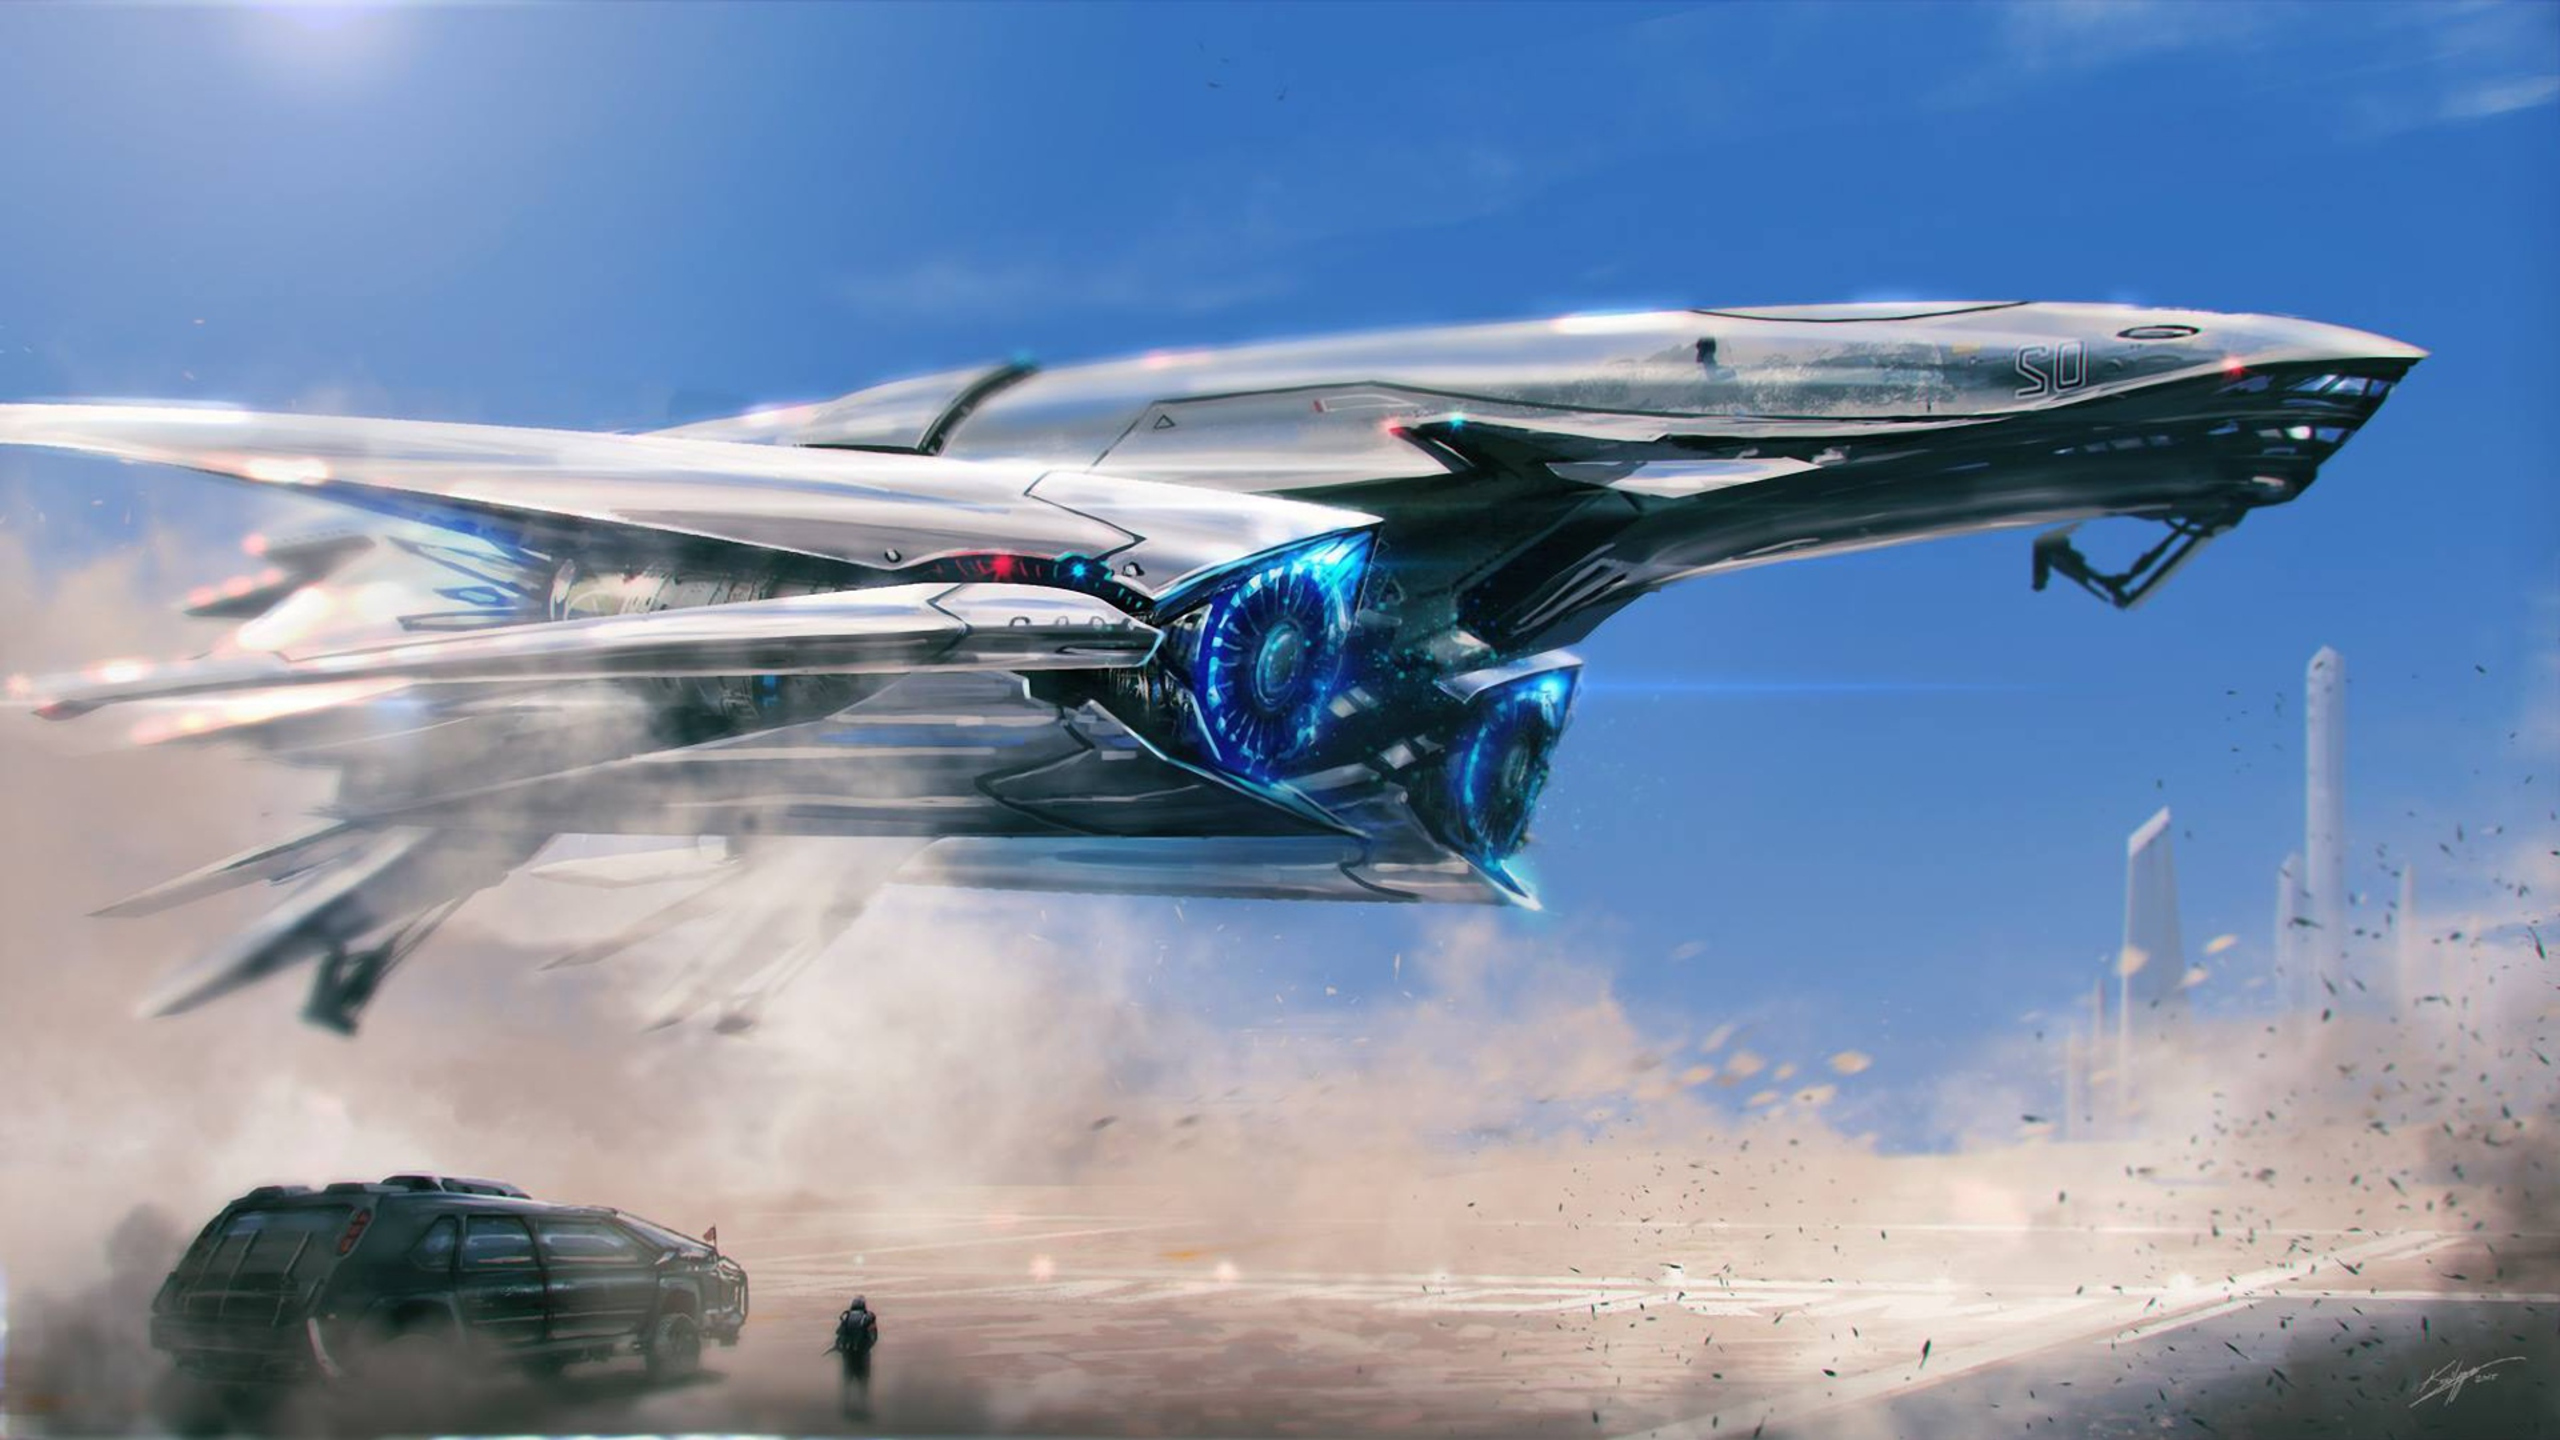 2560x1440 Spaceship Scifi 1440P Resolution HD 4k